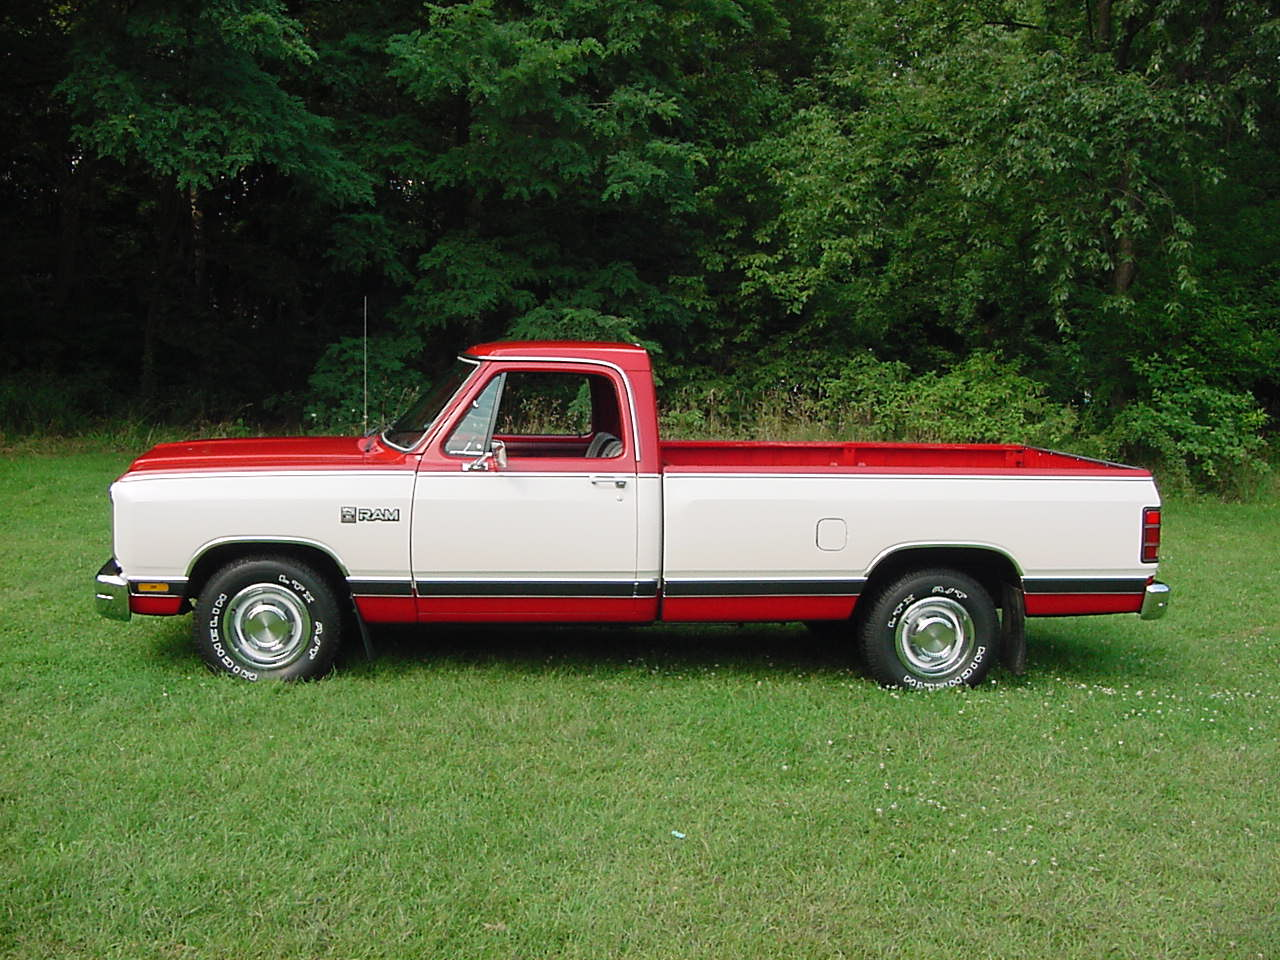 1986 Dodge Ram, mine looked like this but had a lot of rust around the bed and on the bottom of the truck and it was also white., exterior